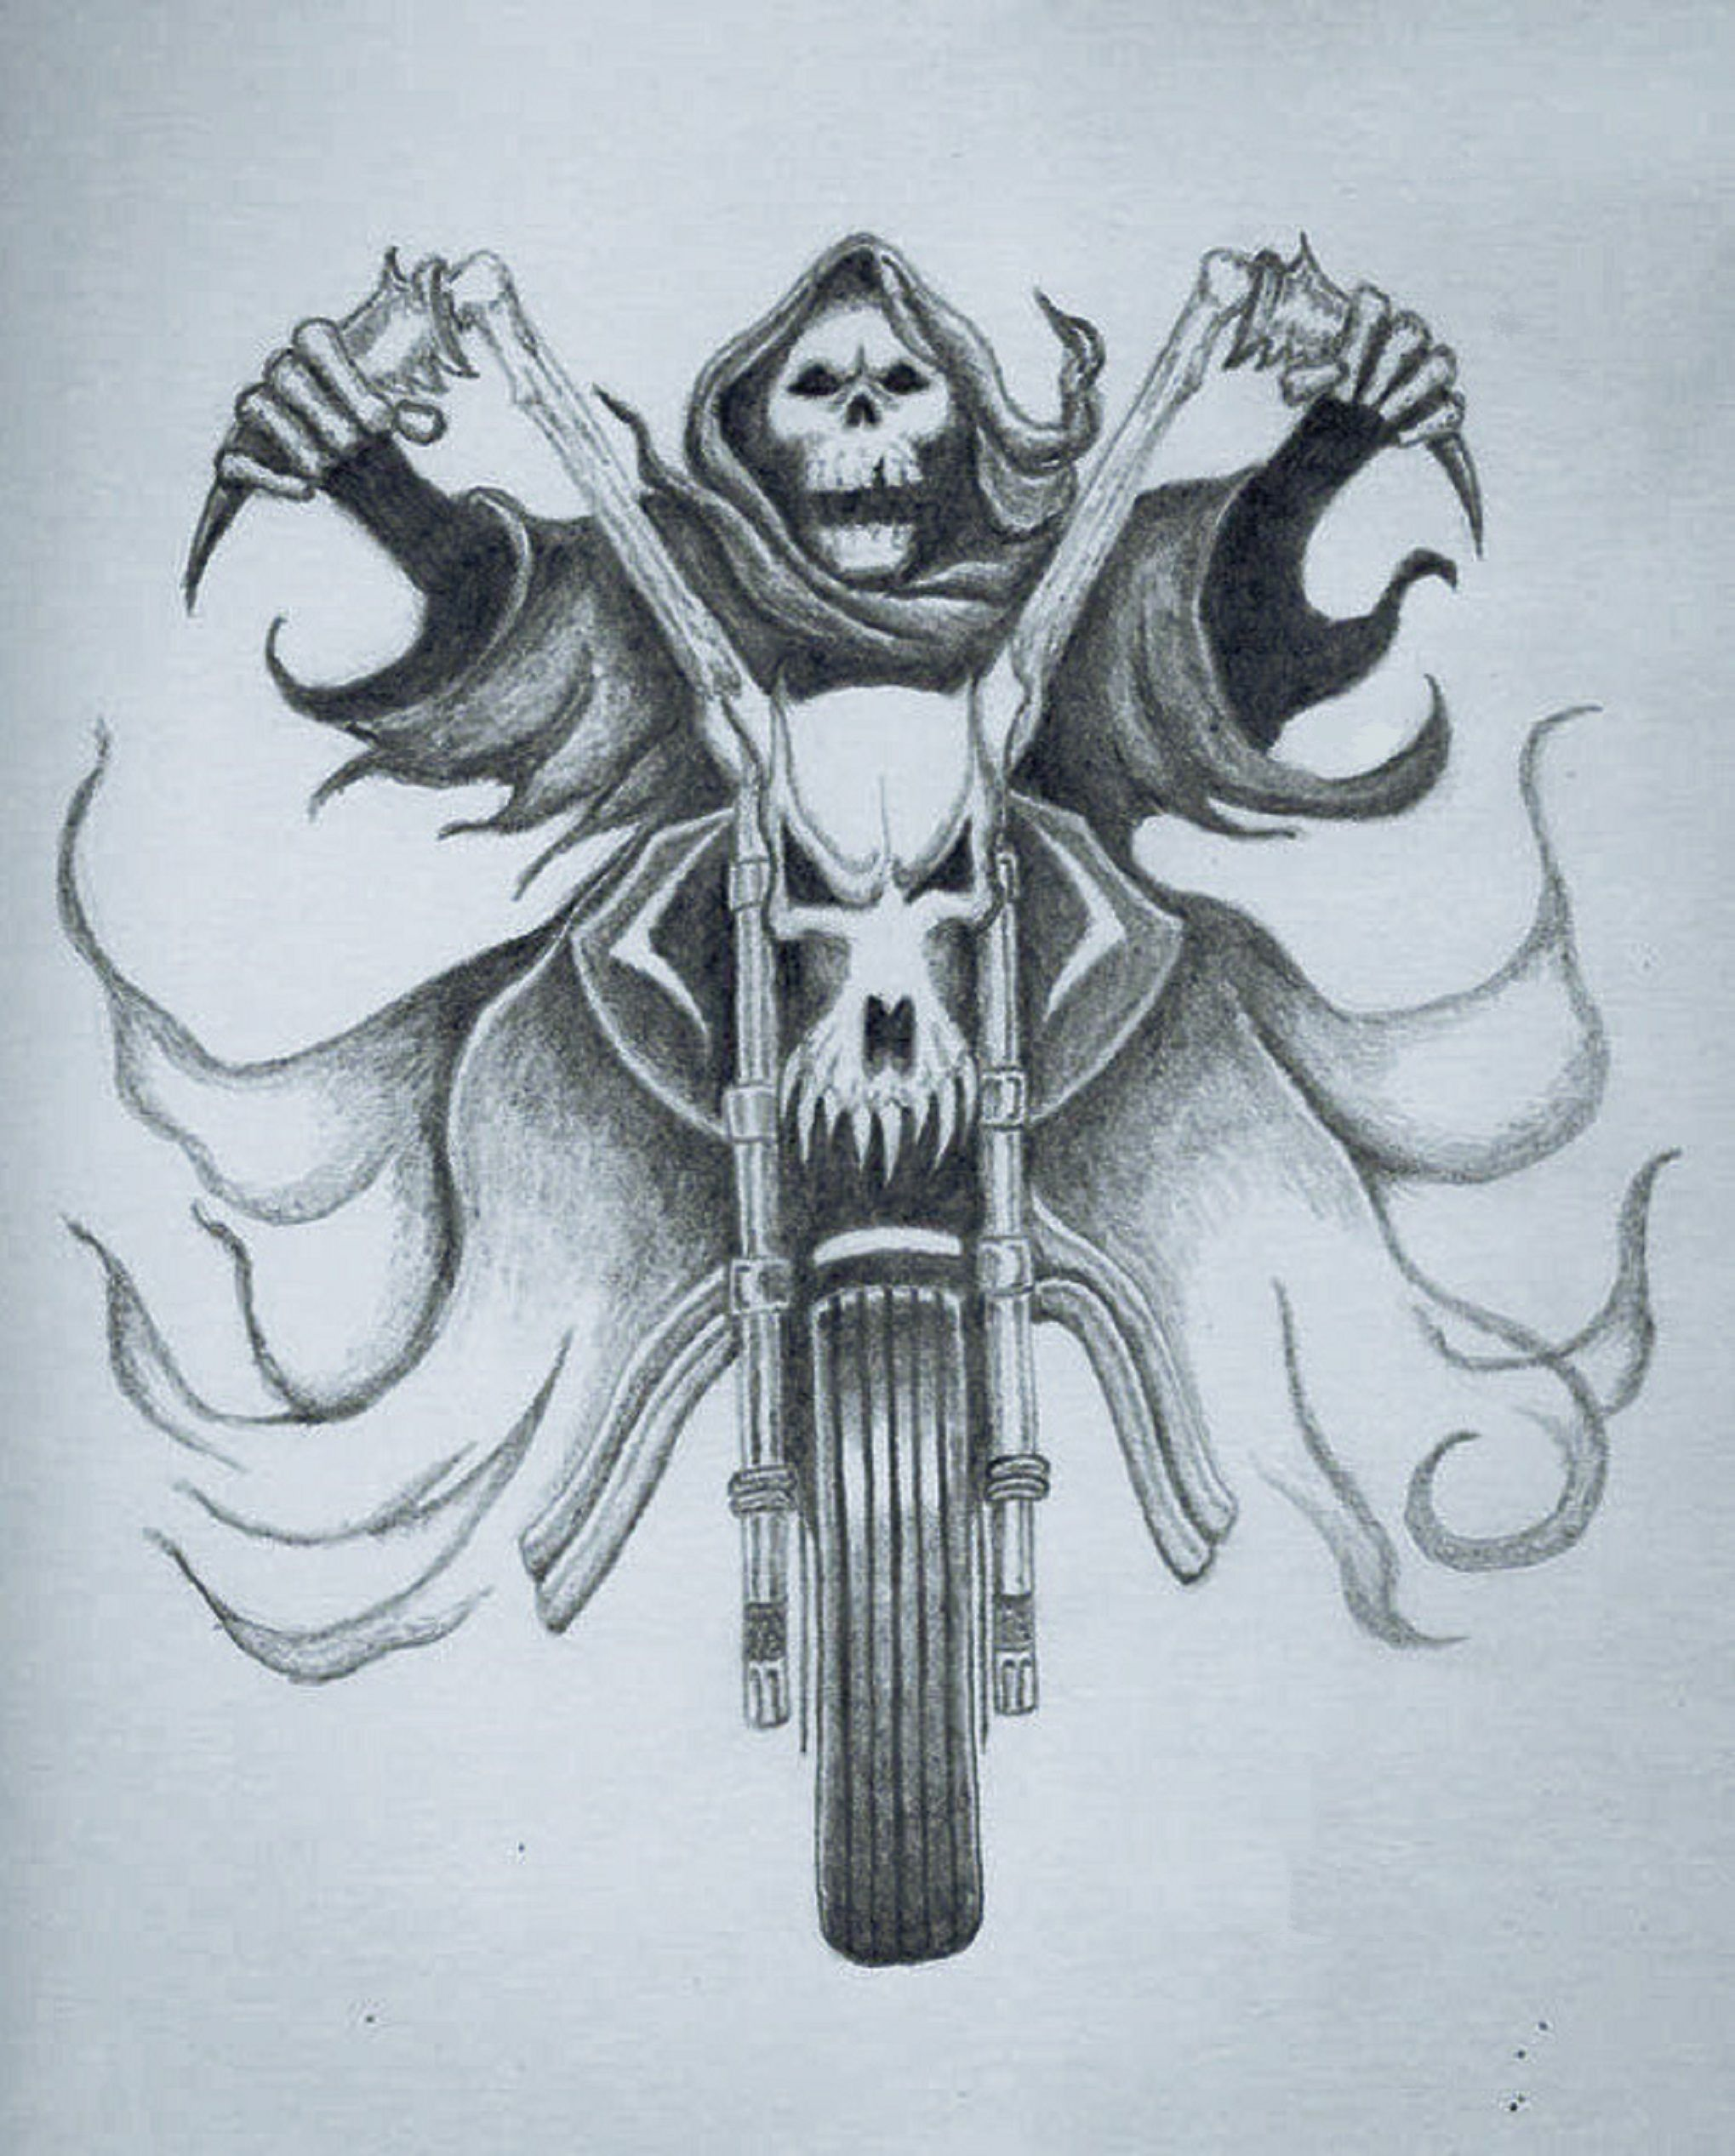 Skeleton Riding Bike Tattoo Design.